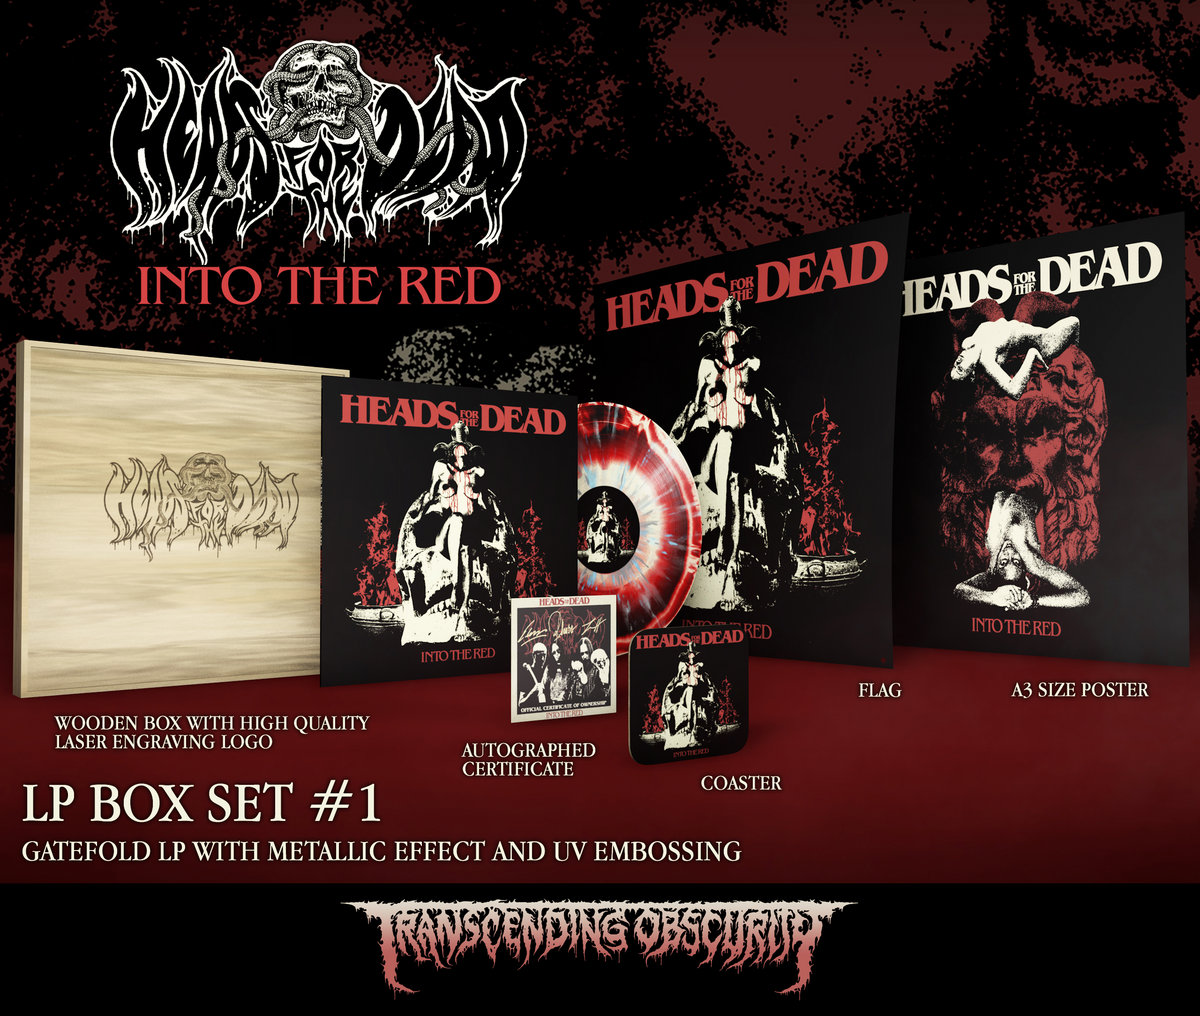 Heads For The Dead - Into The Red Wooden LP Box Set (Limited to 20 per variant)